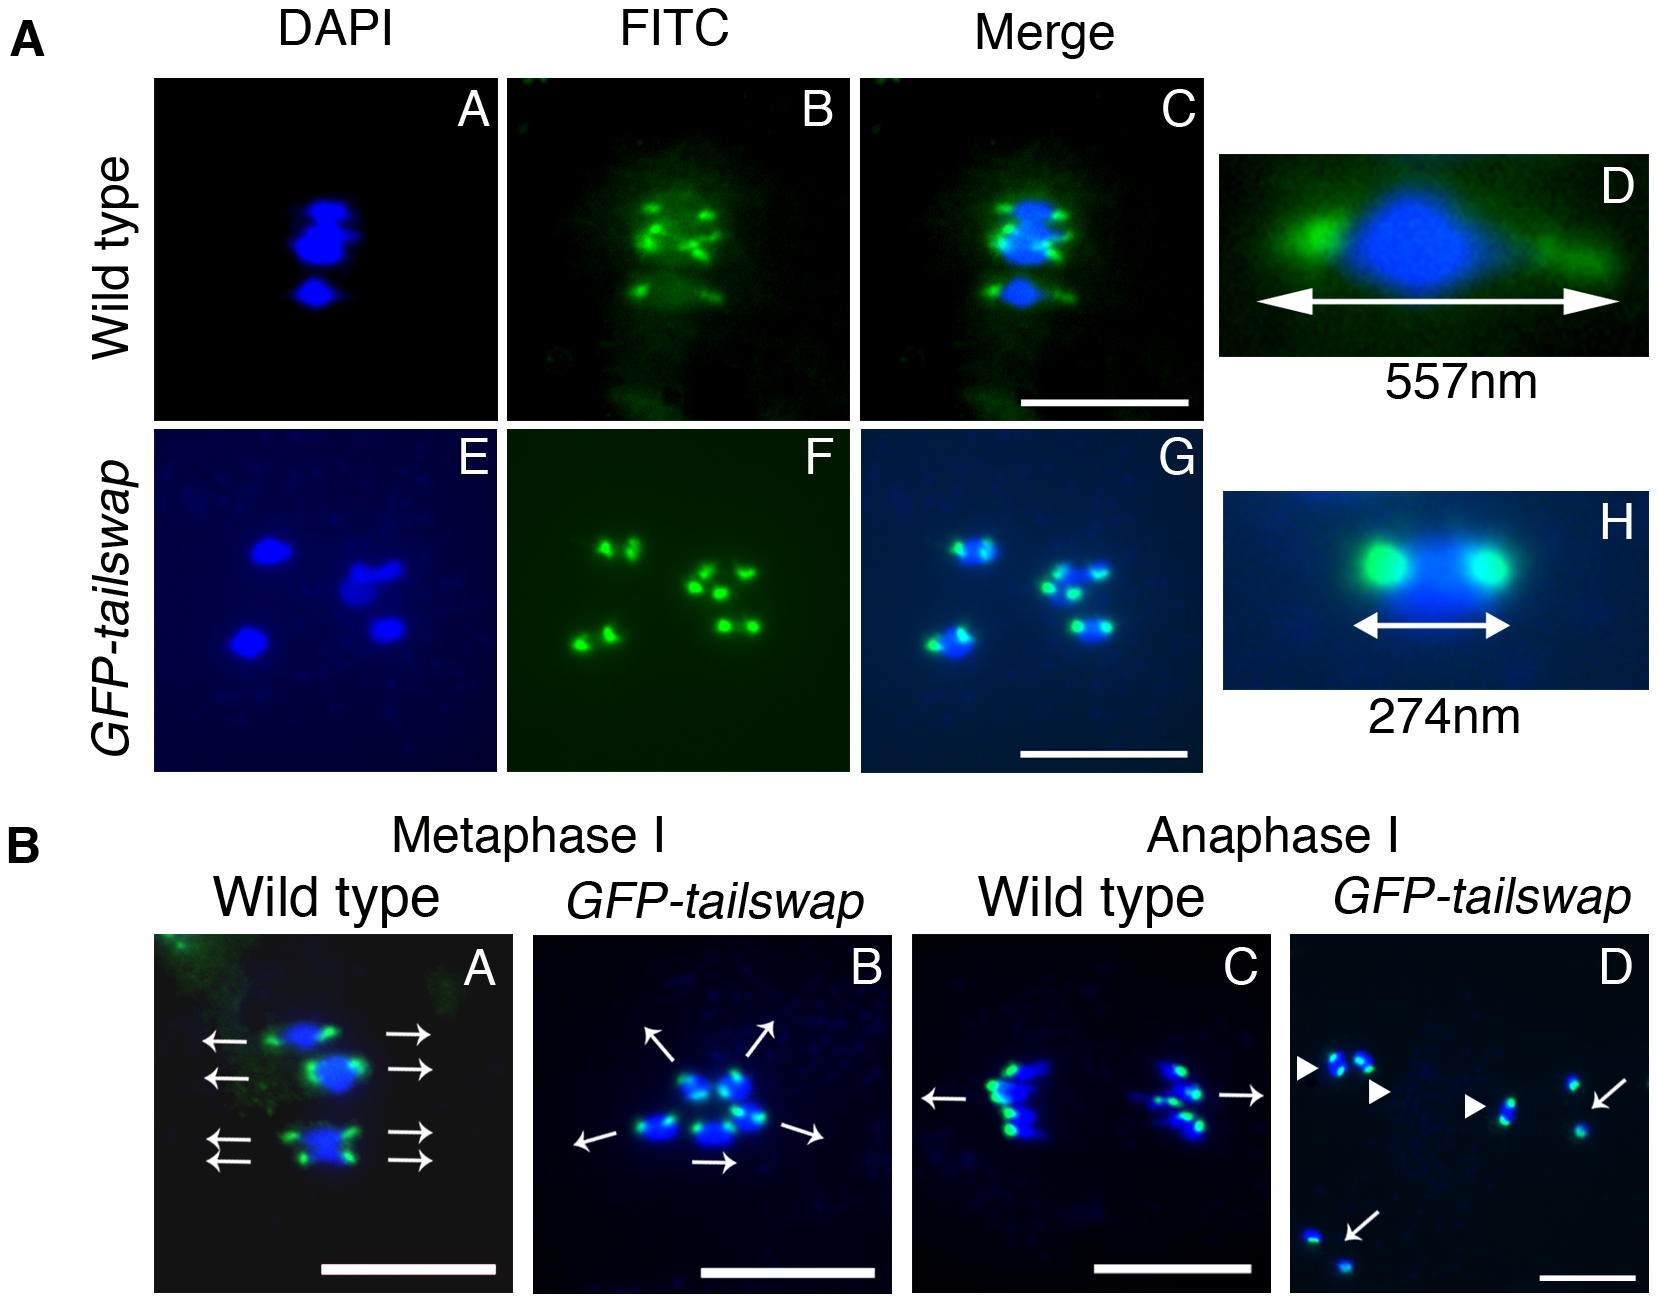 Reduced inter-kinetochore distance and meiotic spindle defects suggest lack of kinetochore function in <i>GFP-tailswap</i>.